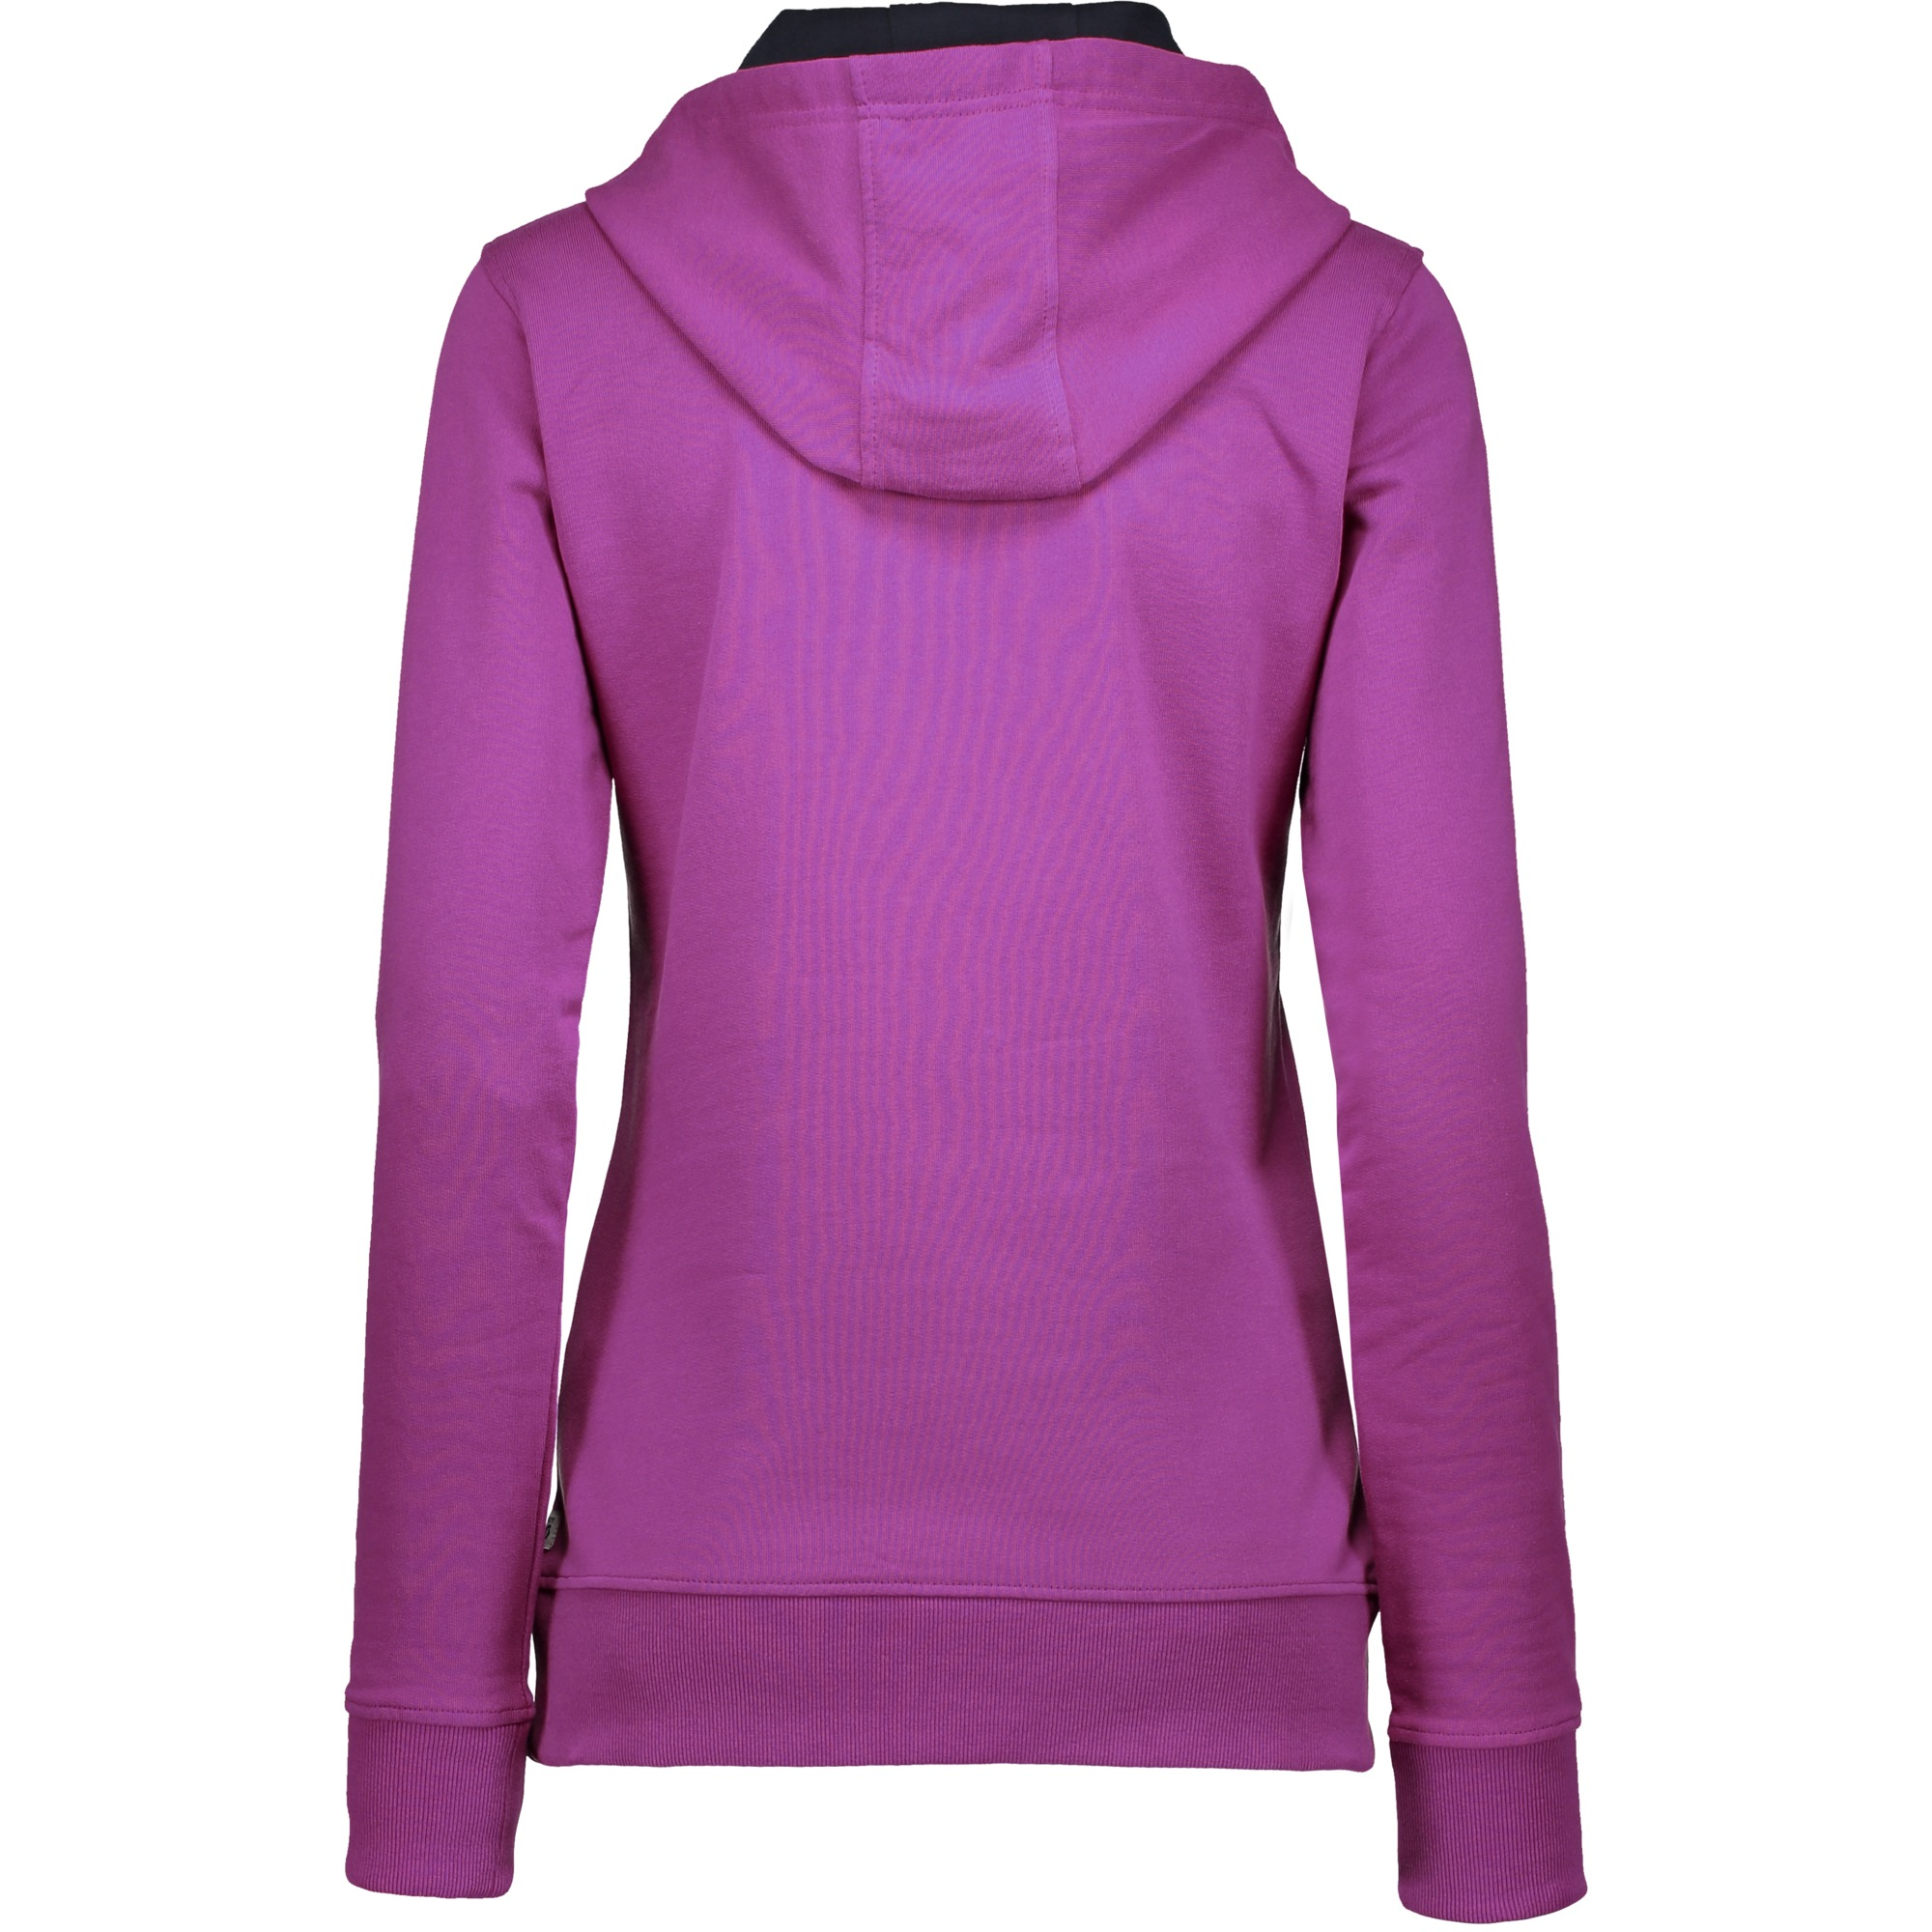 SCOTT 20 Casual l/sl Damen Hoody